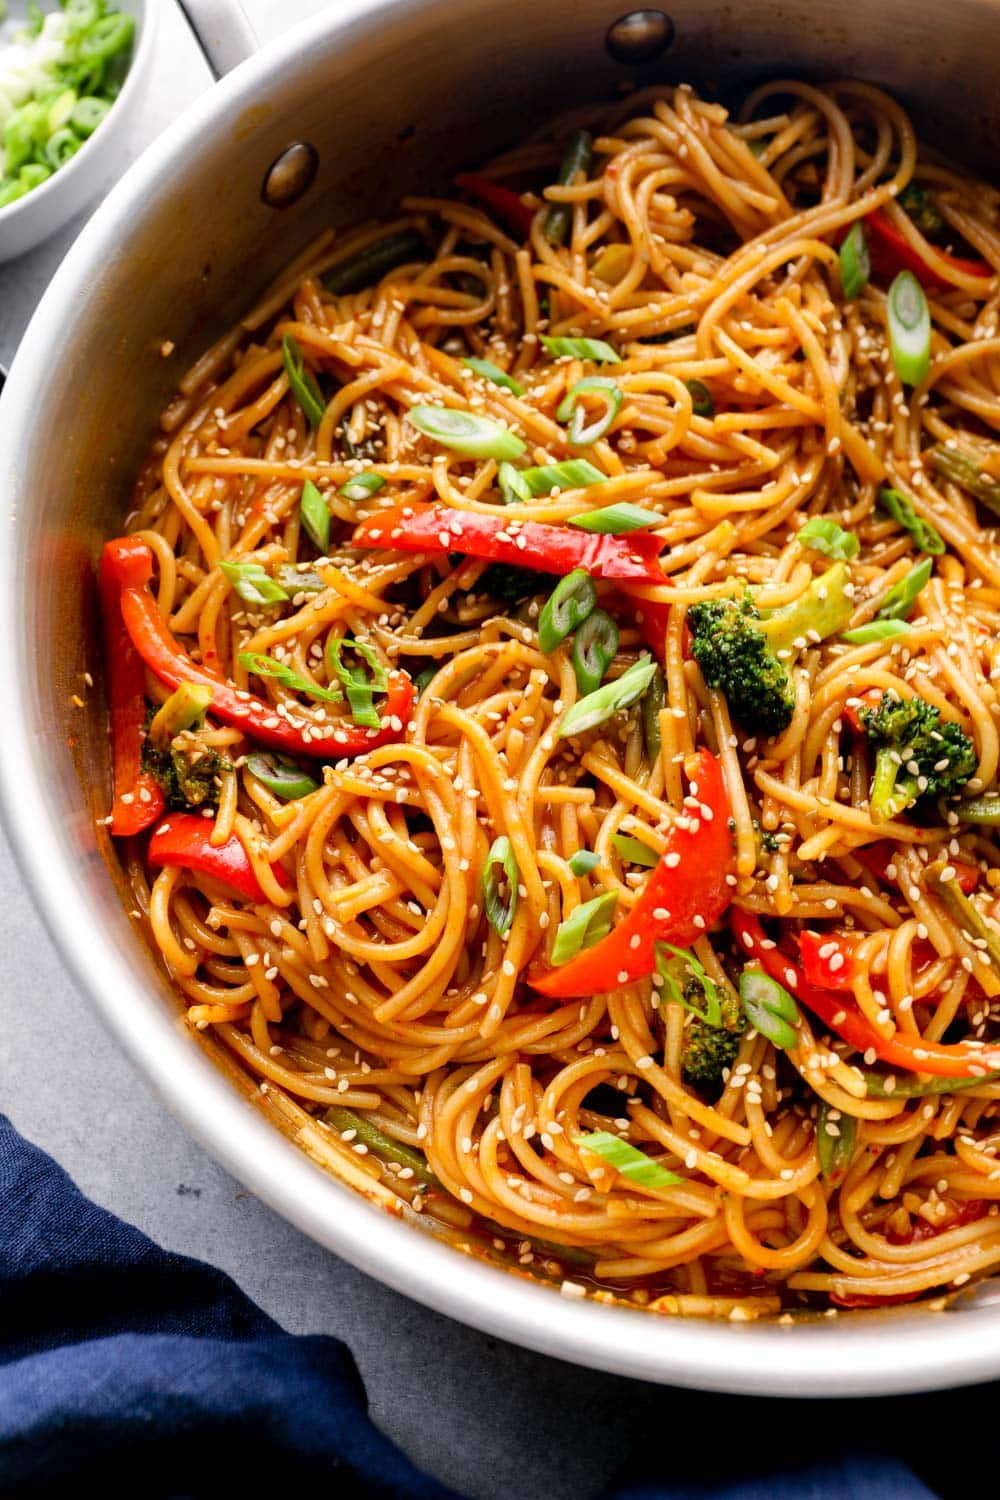 Pasta in a pan with veggies and gochujang sauce.